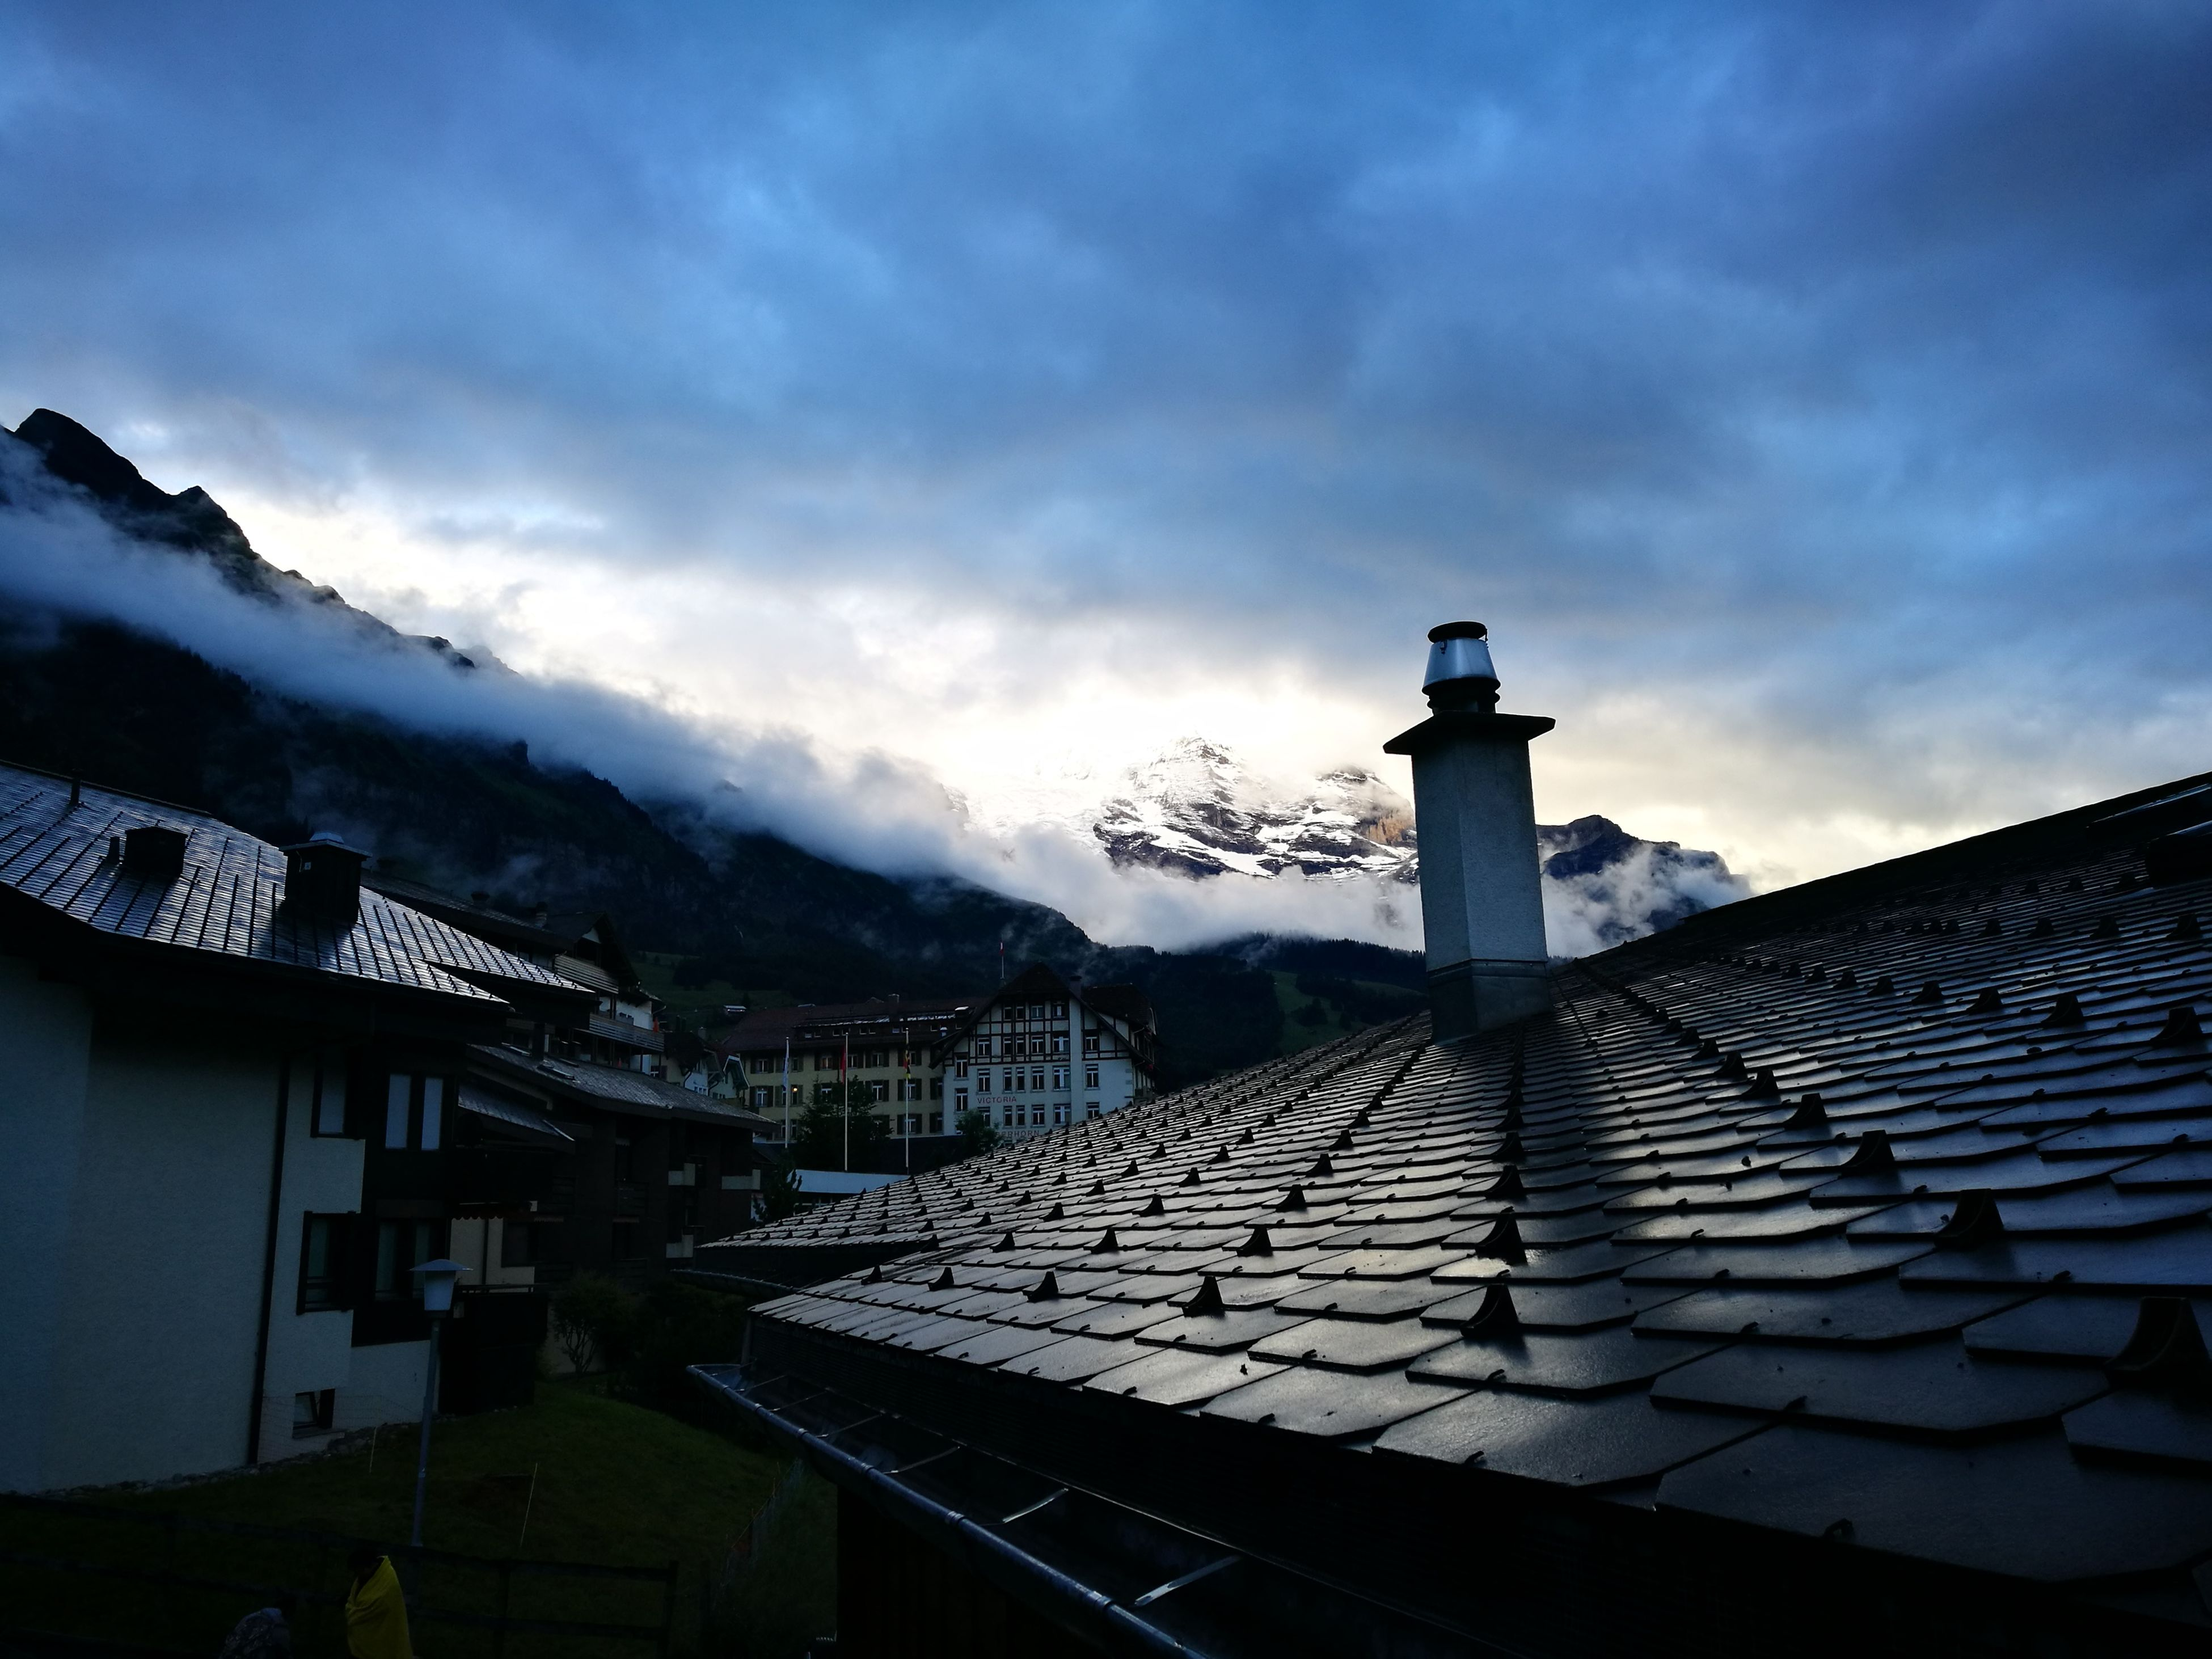 built structure, architecture, building exterior, roof, cloud - sky, no people, house, sky, outdoors, day, tiled roof, nature